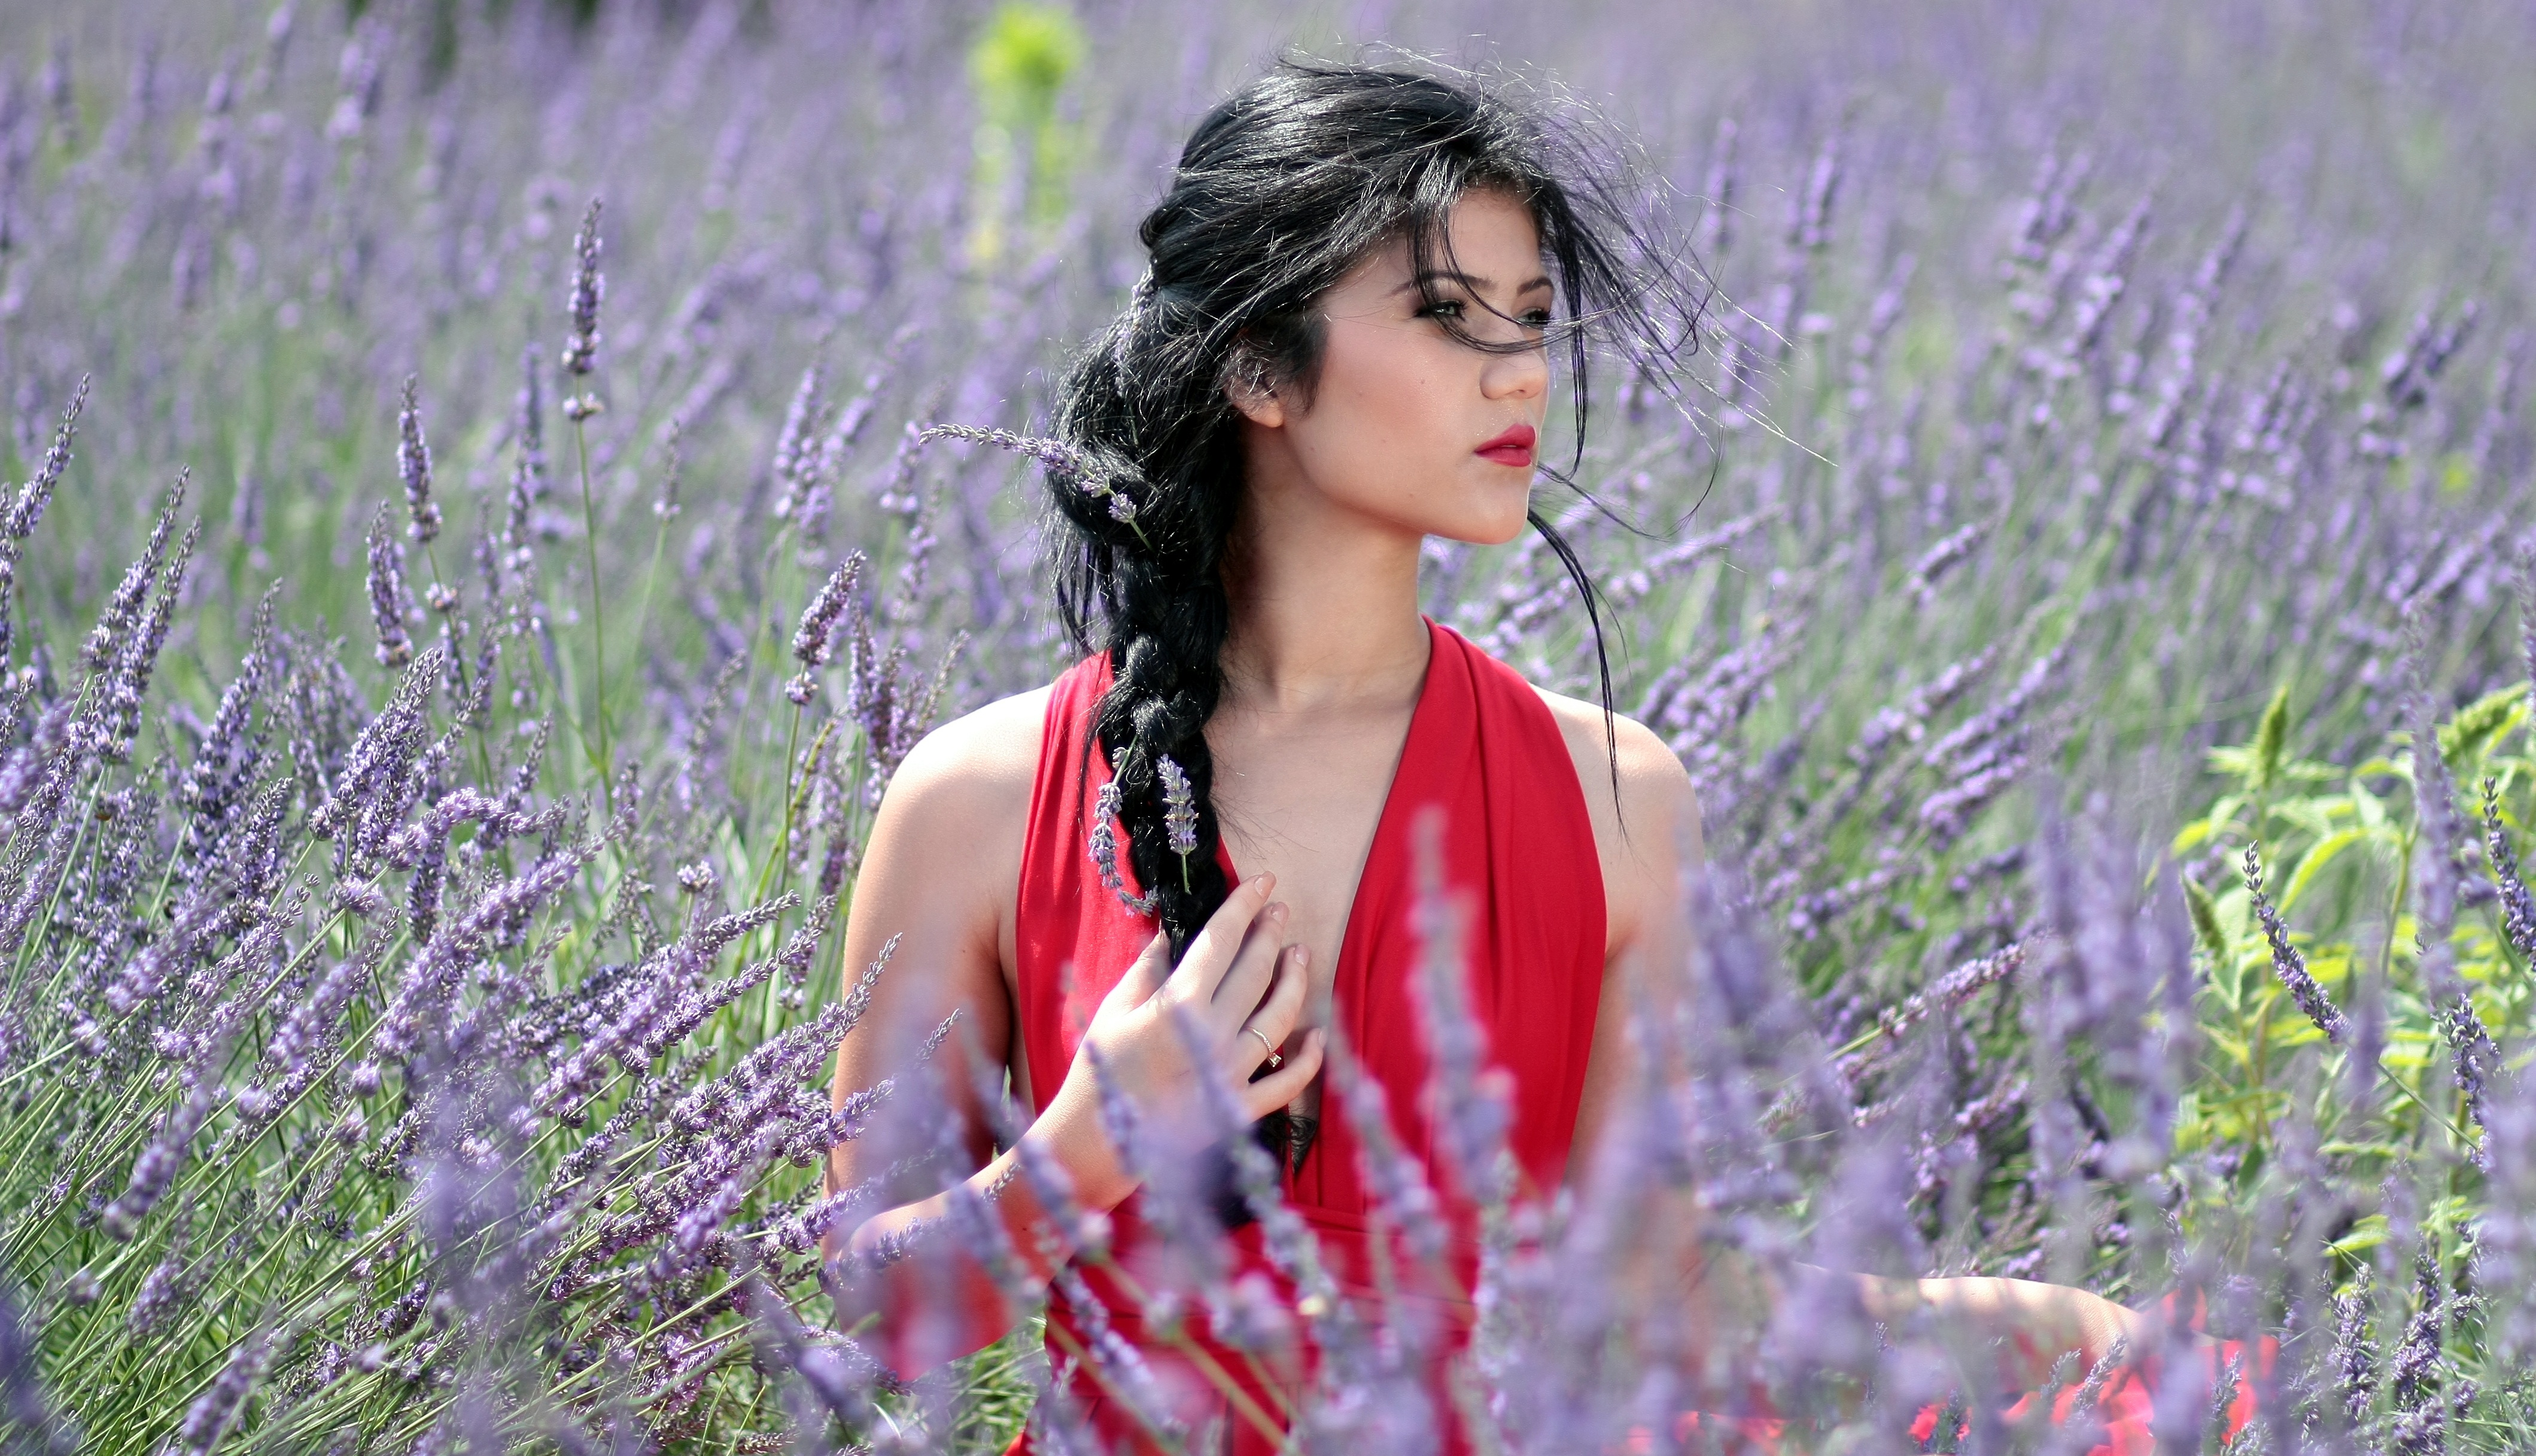 Beautiful Girl In Lavender Flowers Image Free Stock